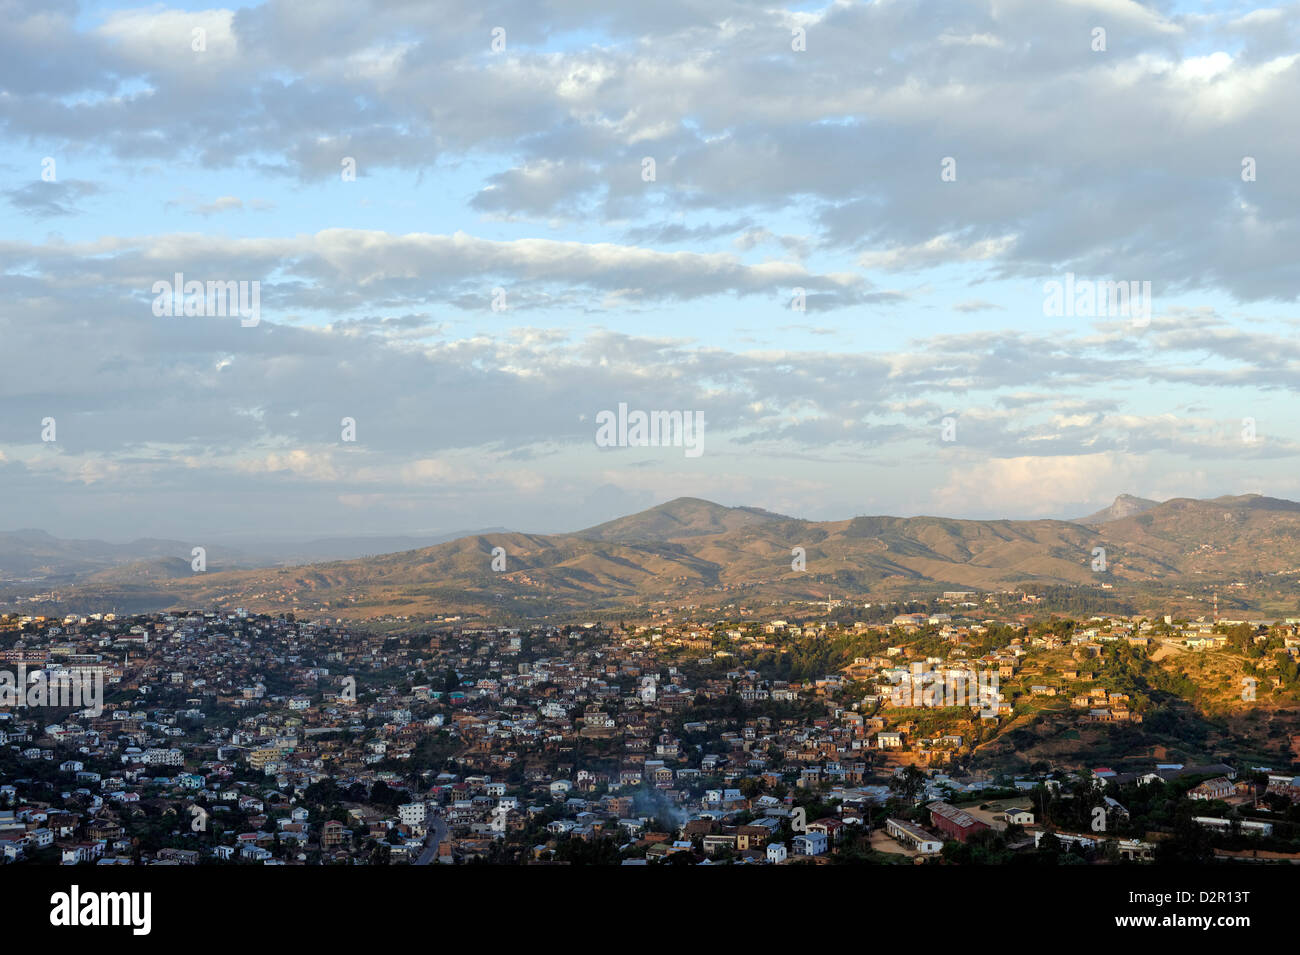 Overview from the upper town, Fianarantsoa, Madagascar, Africa - Stock Image